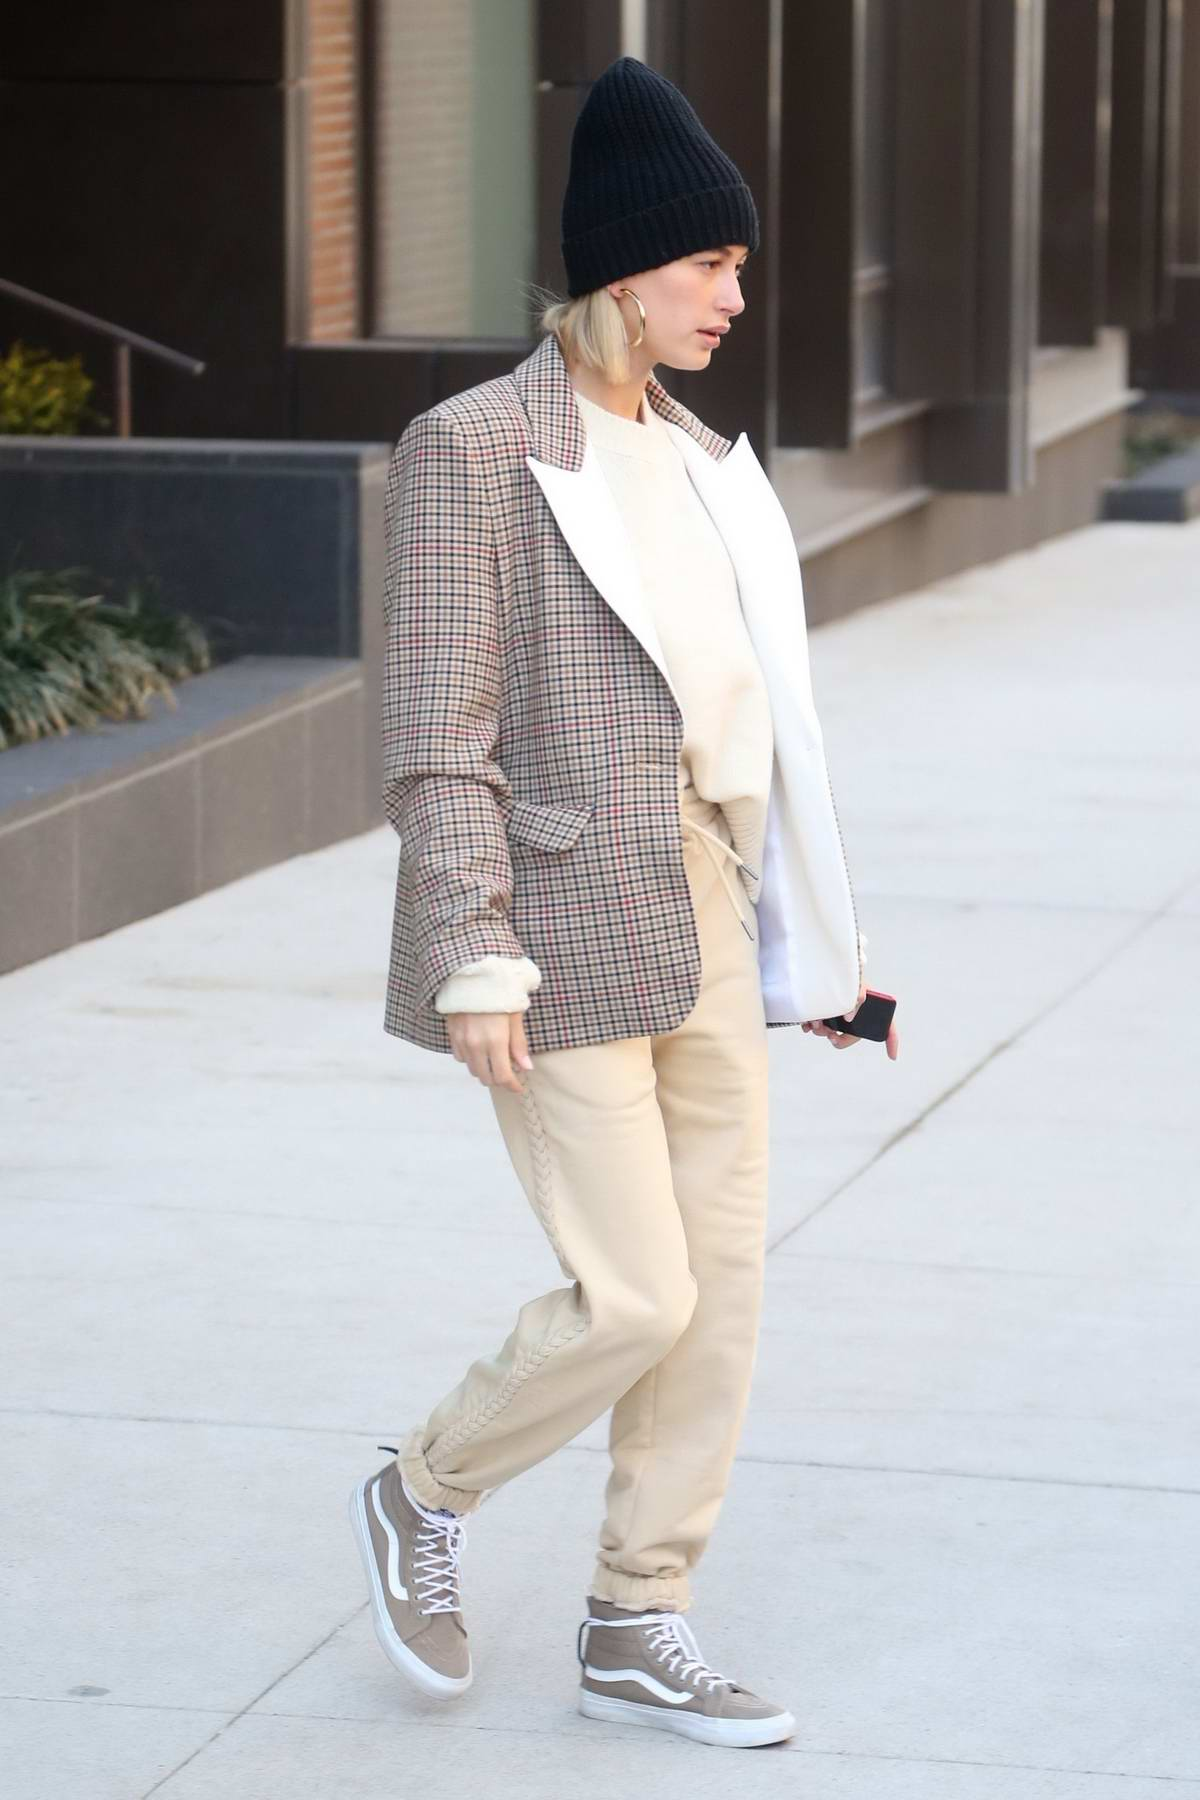 Hailey Baldwin Bieber looks trendy in a plaid blazer with khaki pants and sneakers as she steps out in New York City